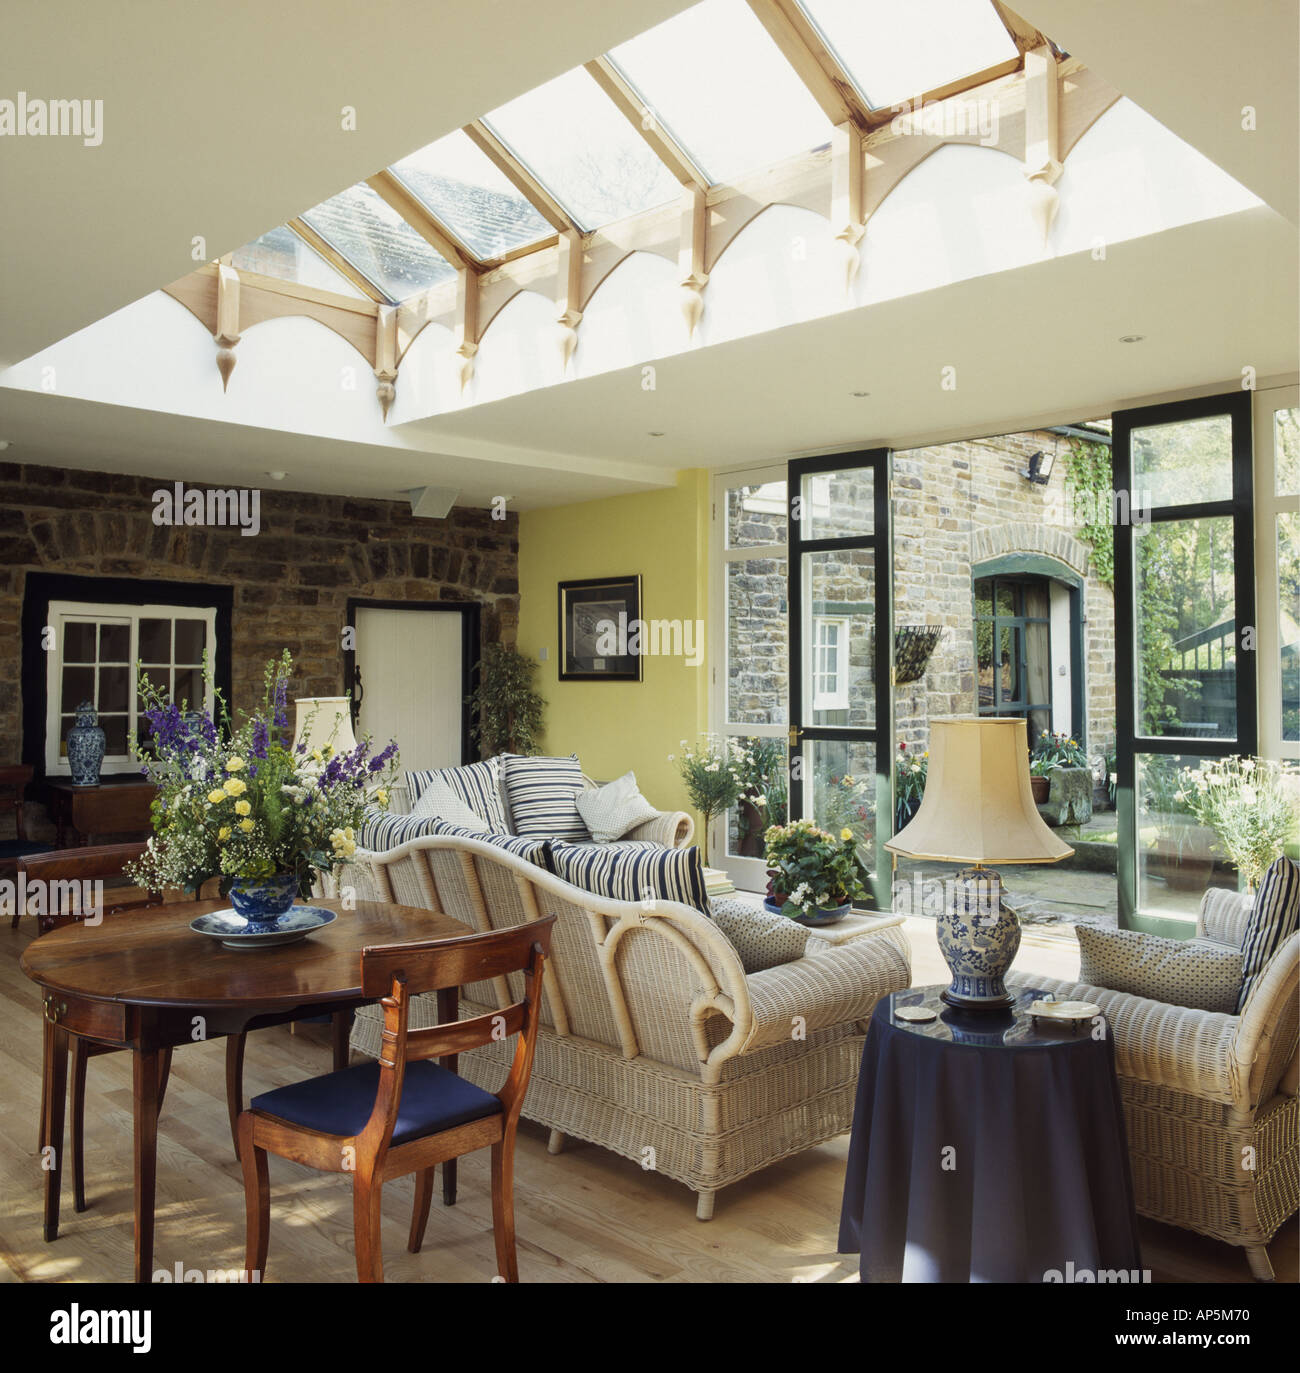 Antique Desk And Chair And Cream Sofa In Sunlit Living Room Extension With  Glass Skylight And Patio Doors